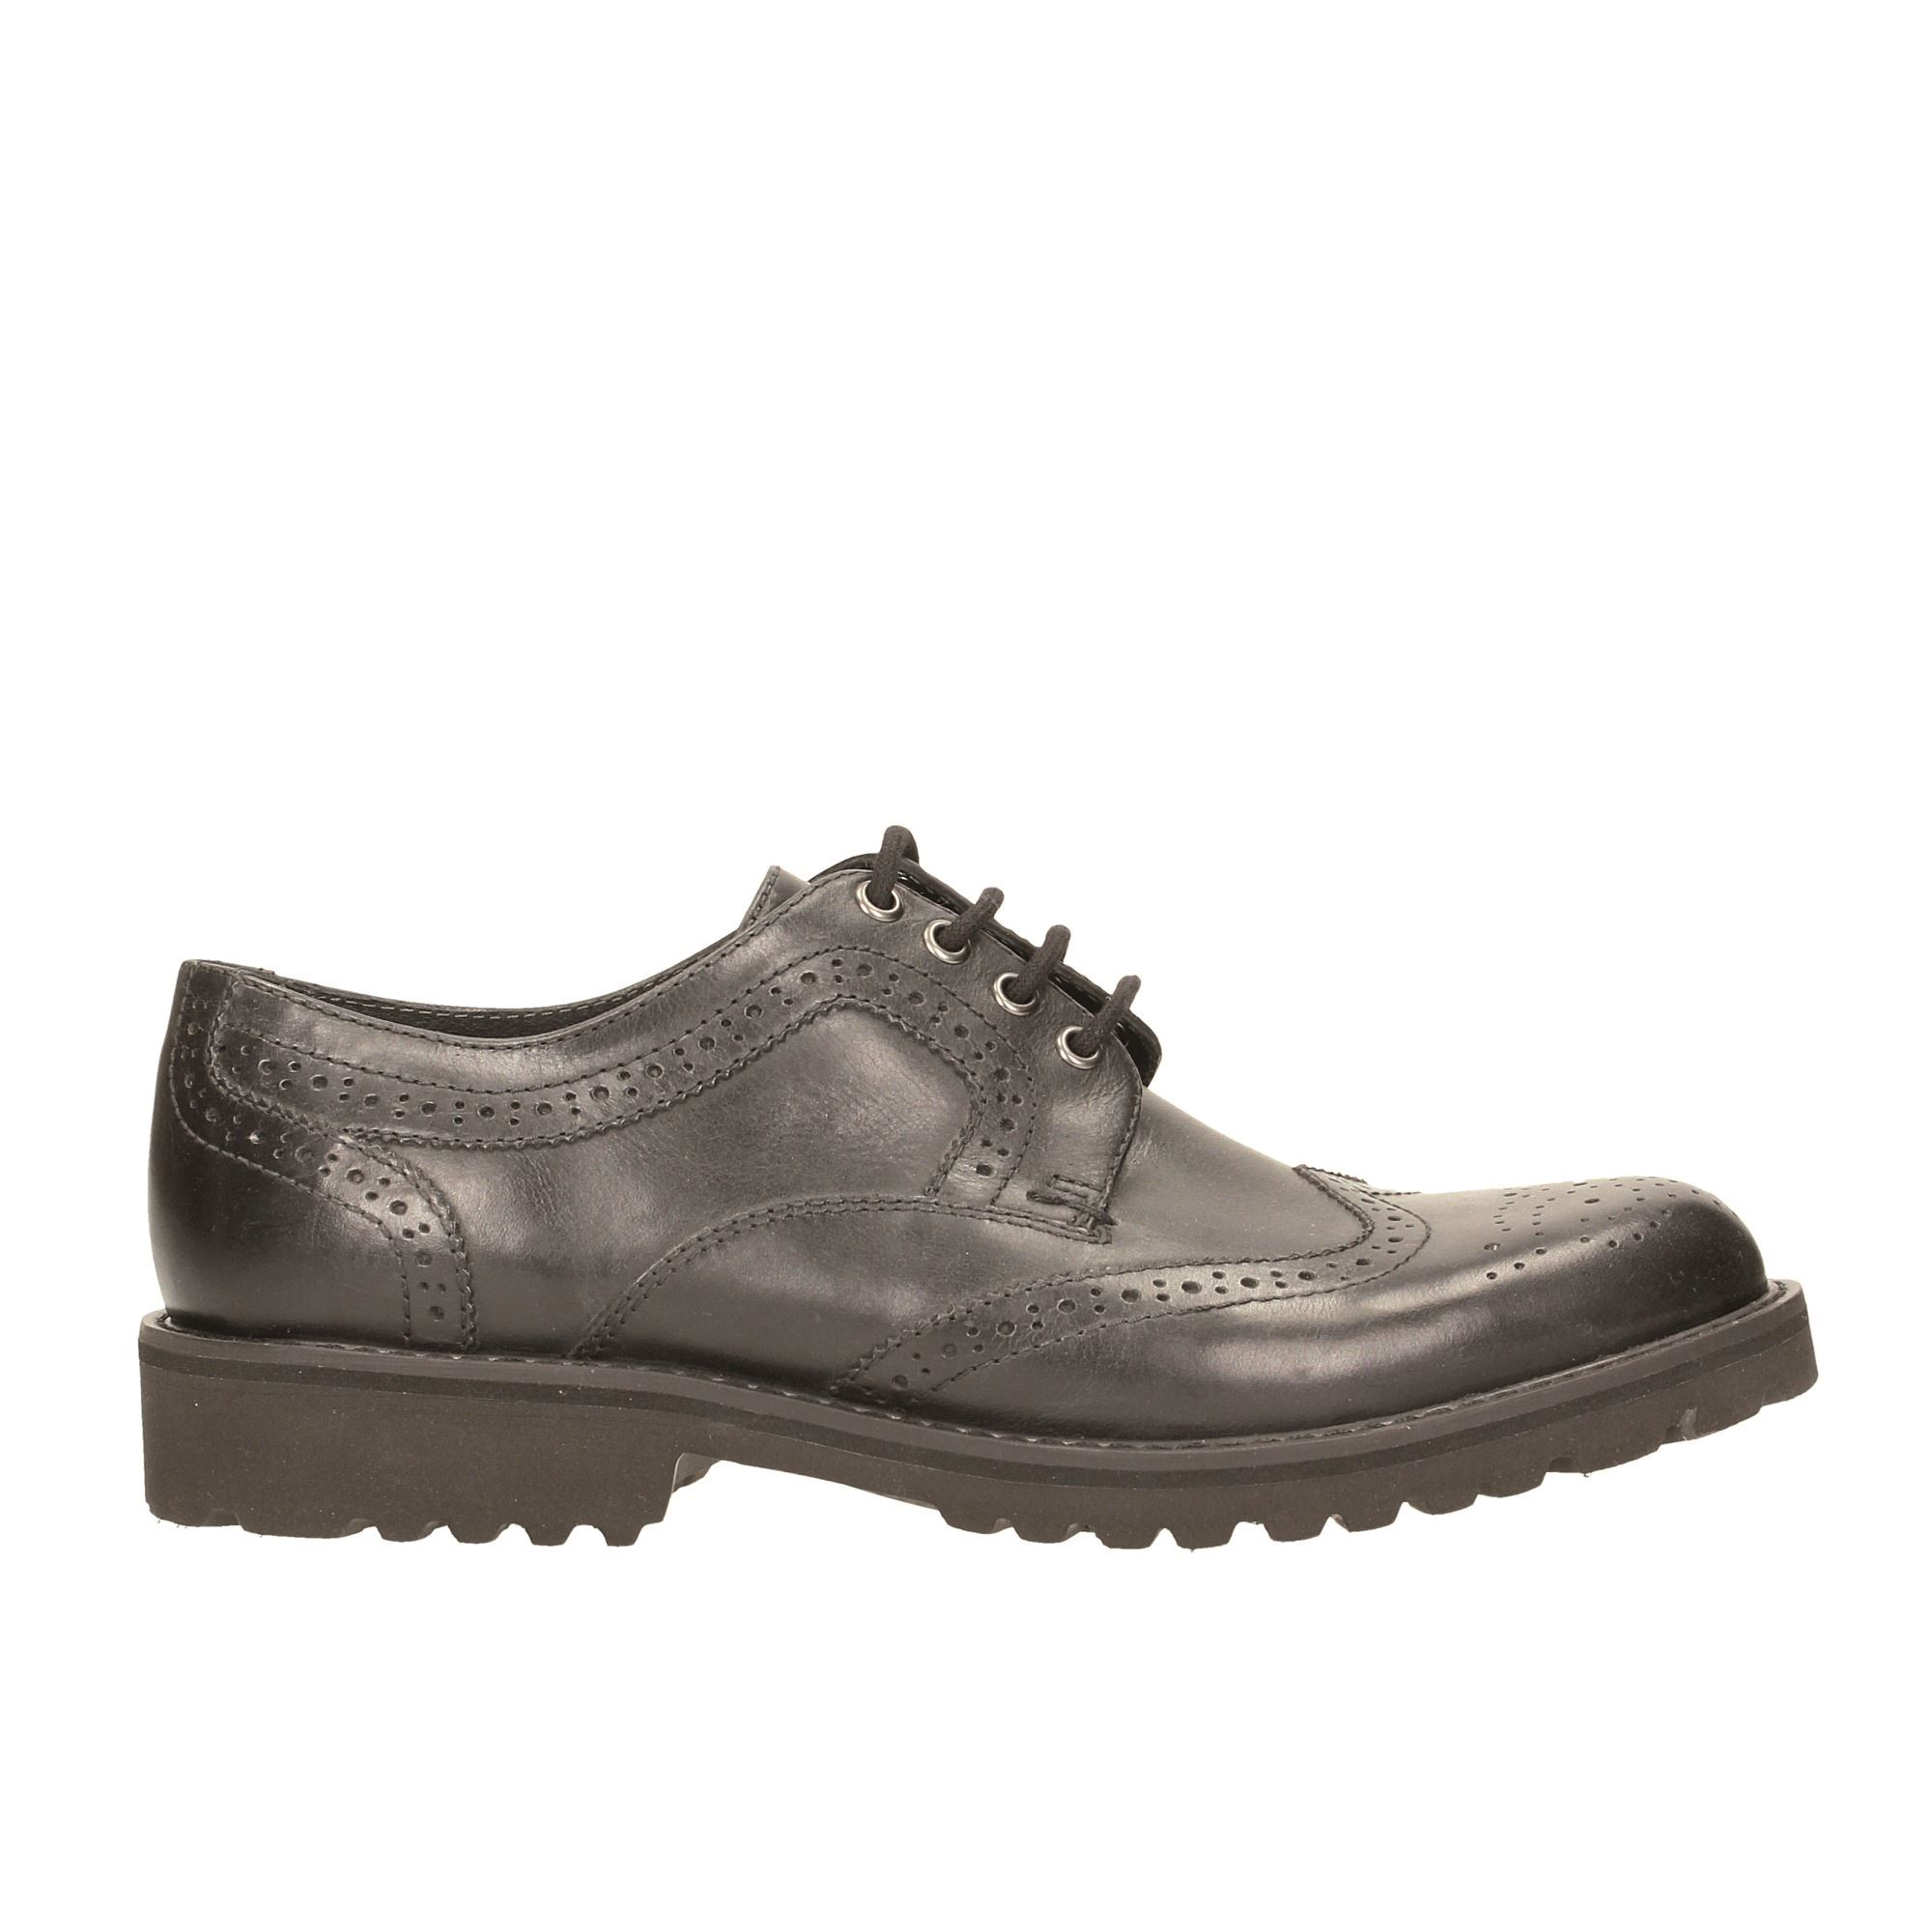 Tata Italia Shoes Man Derby Nero MS-229R12/I17